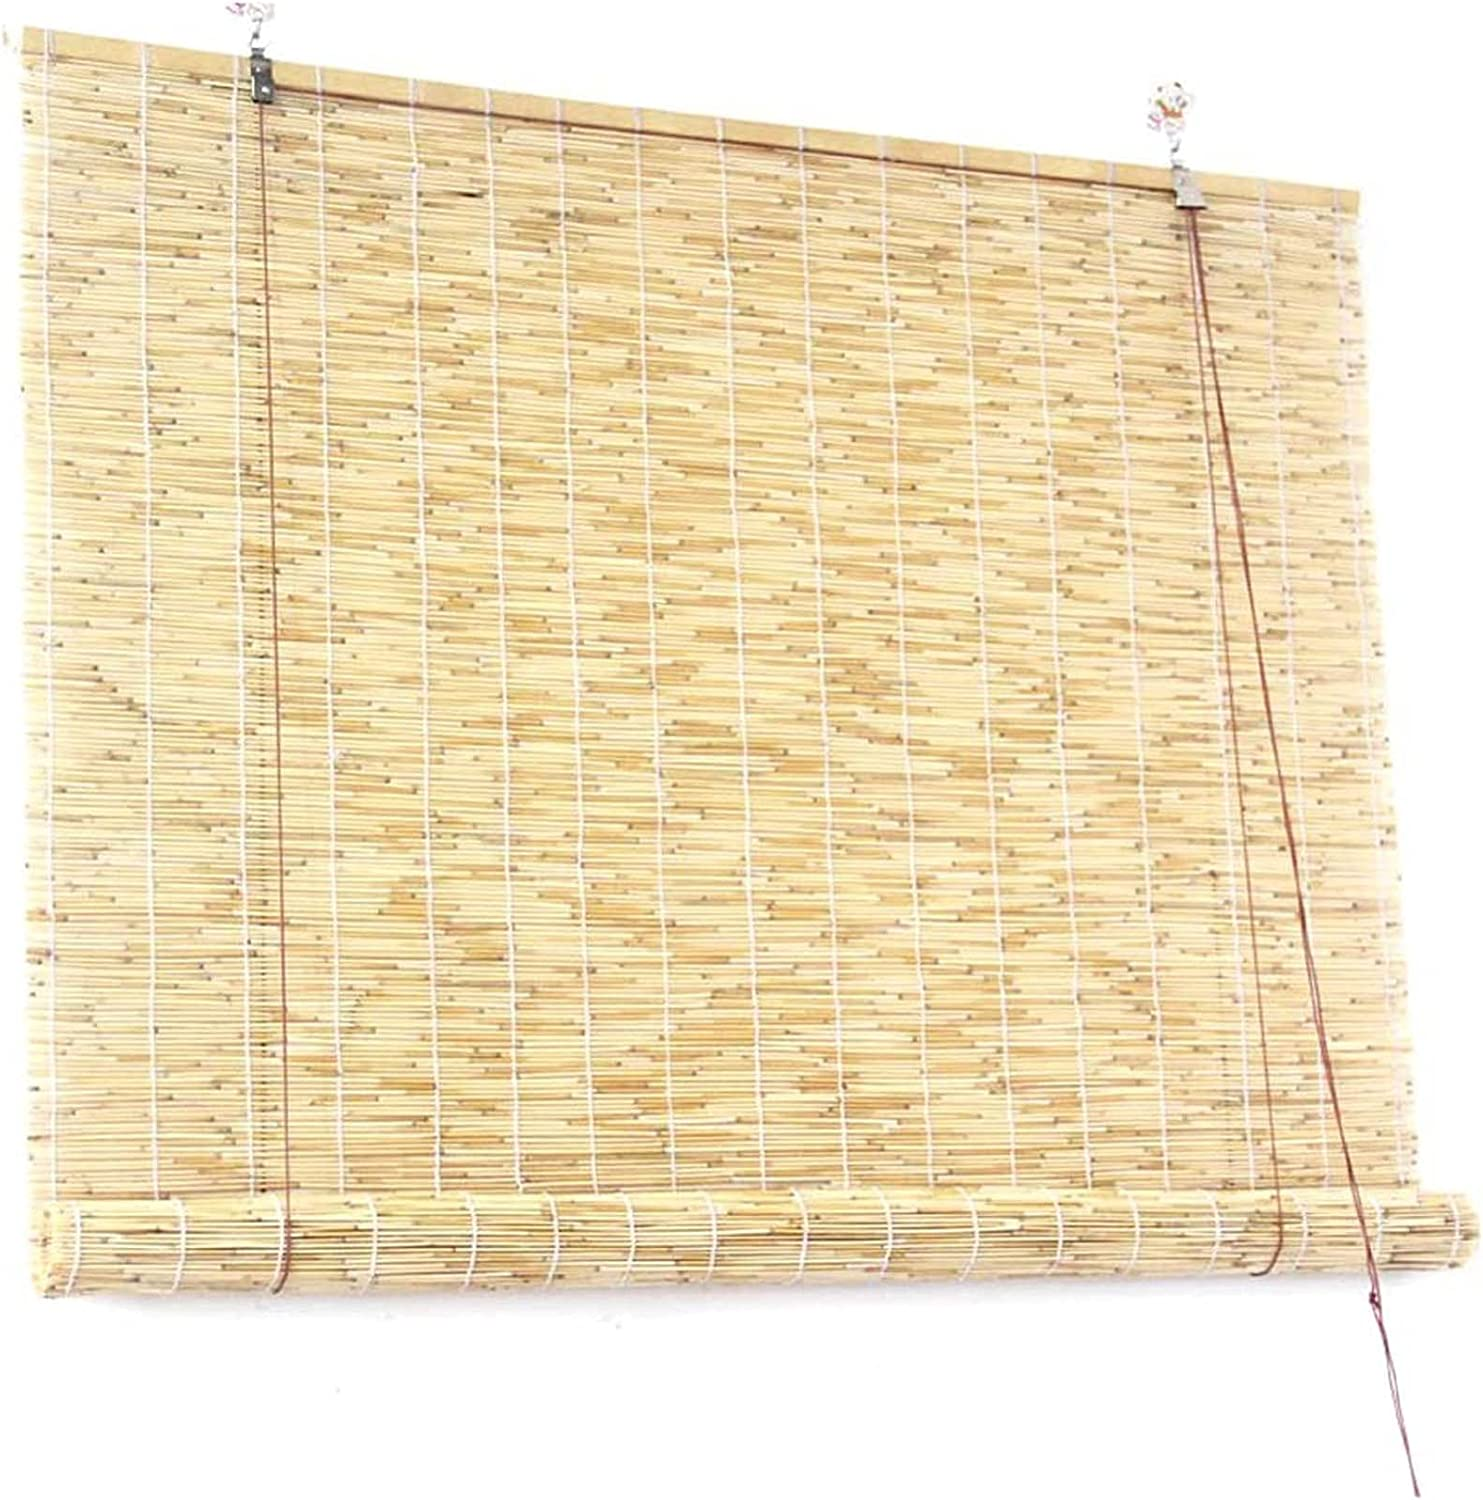 Popular products Roll-up Reed Shade Direct stock discount Natural Roll Window Up Hand-Woven Blind